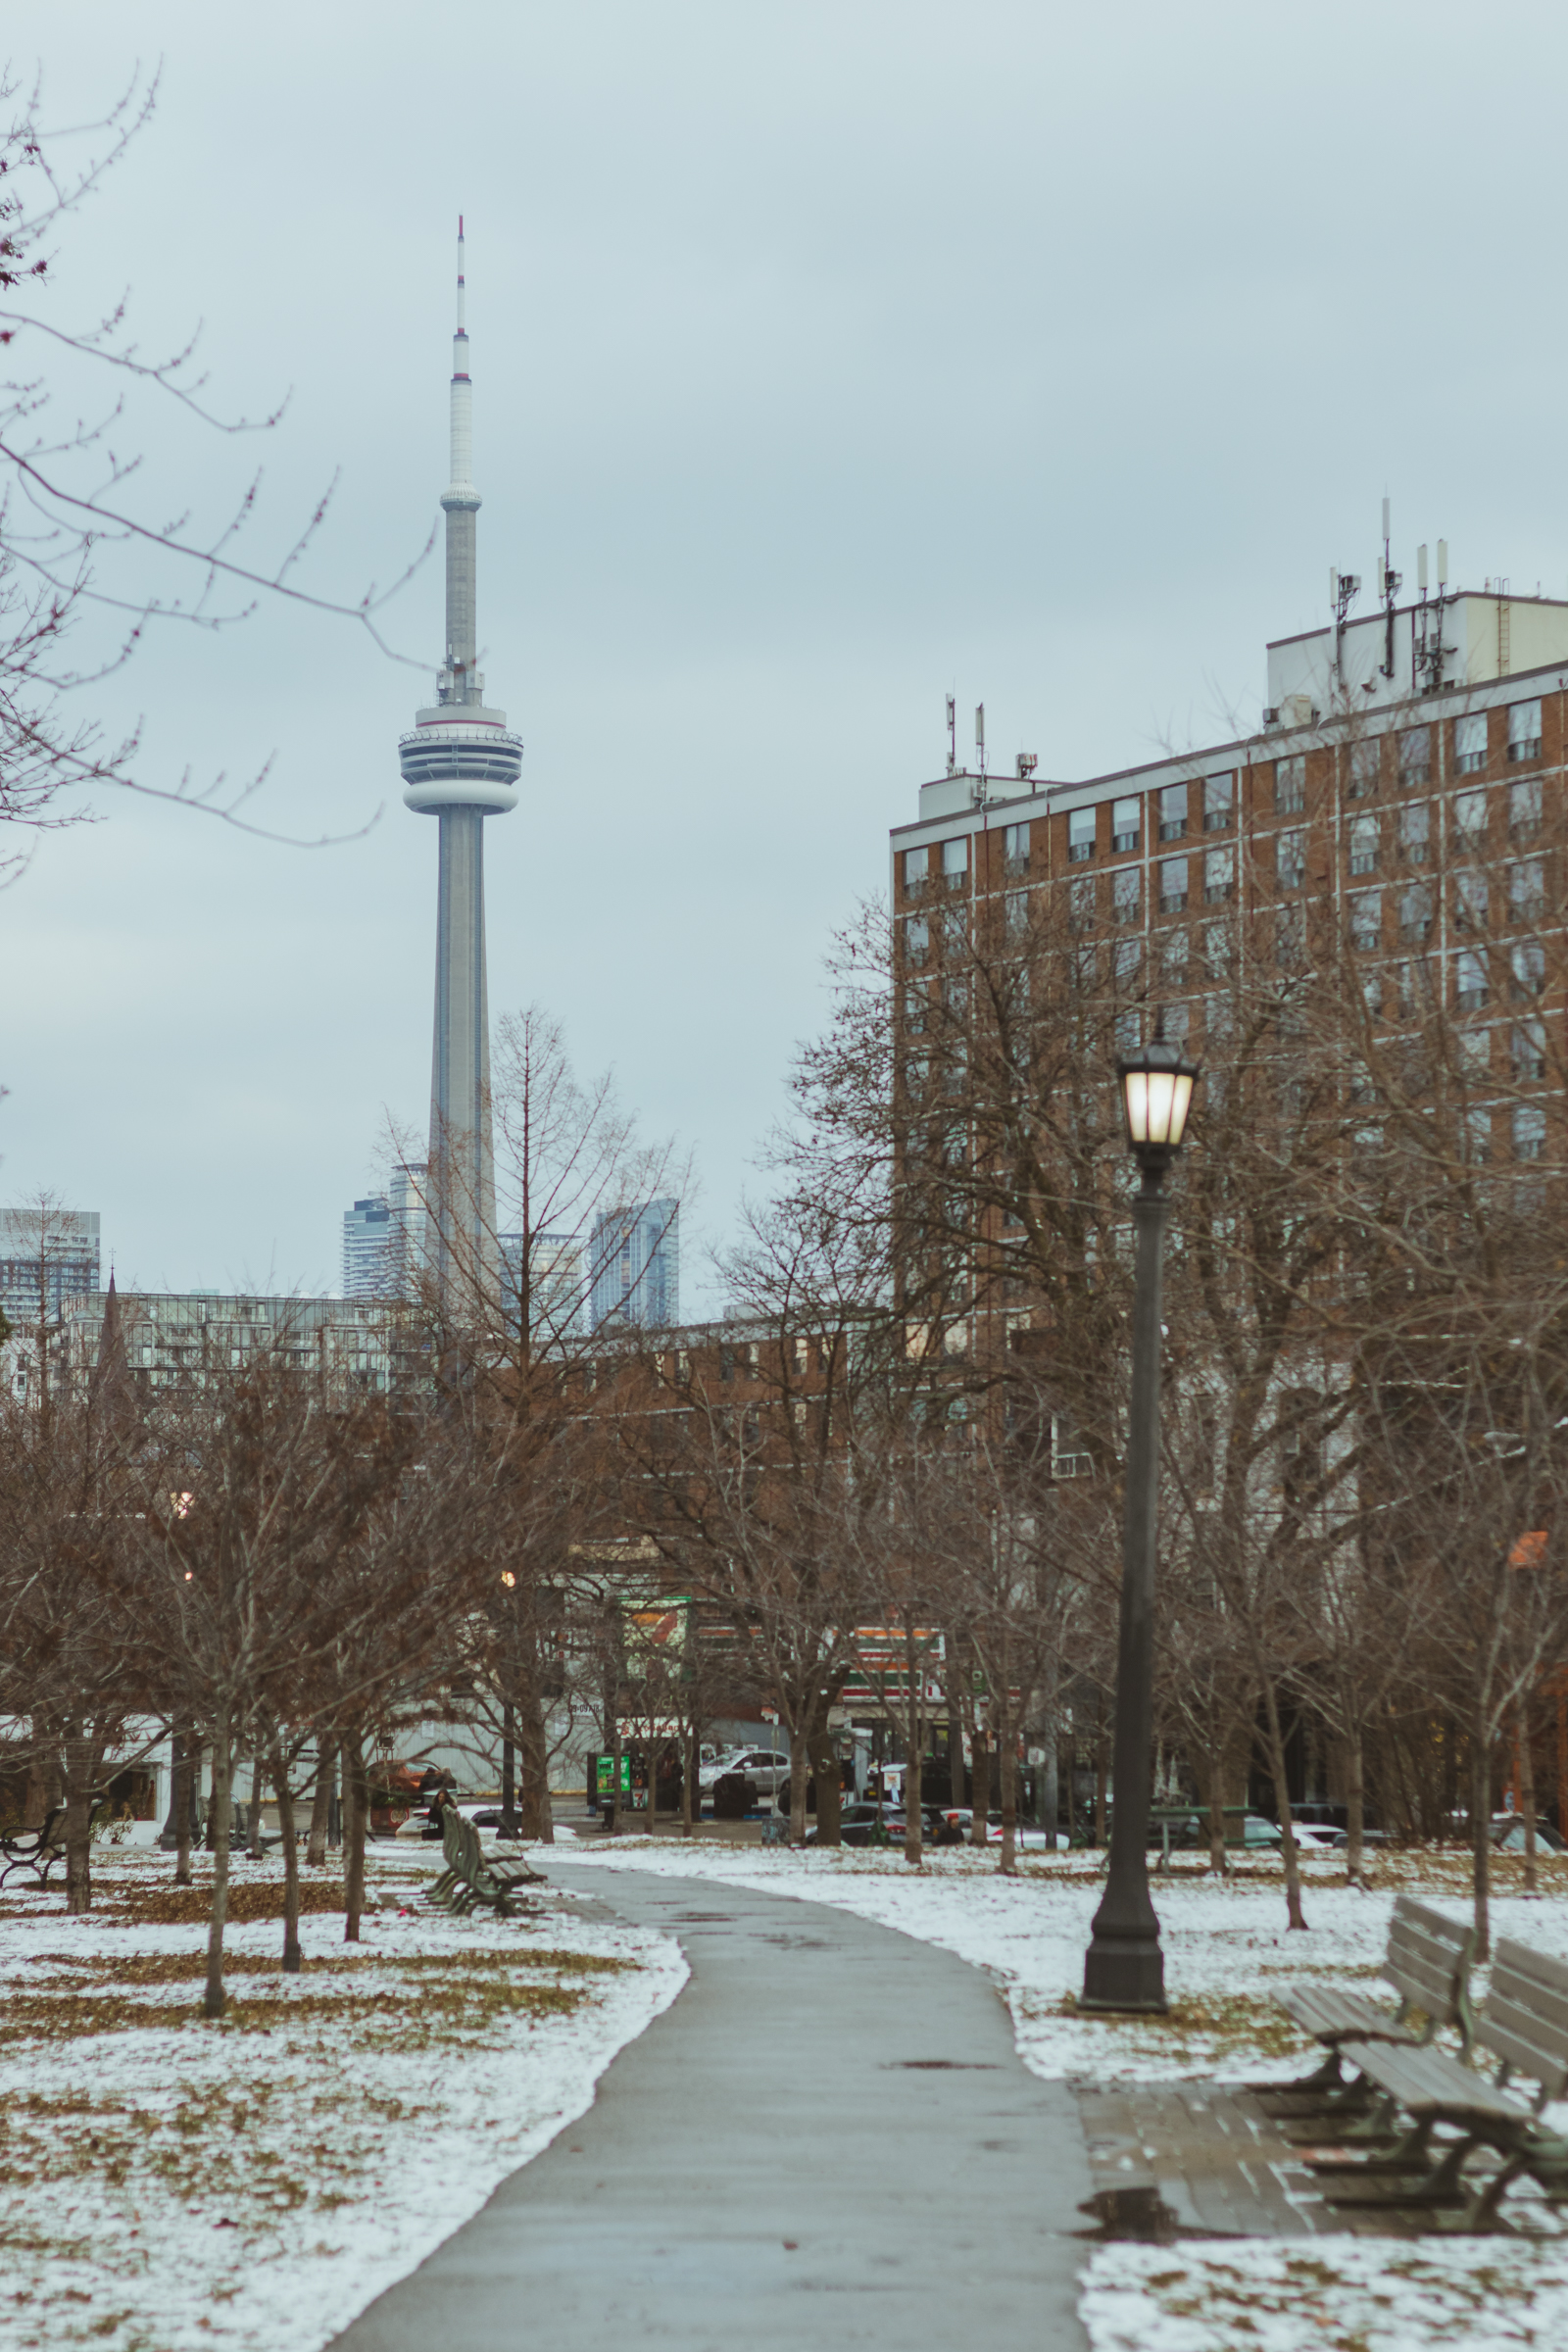 toronto cn tower scene in the winter